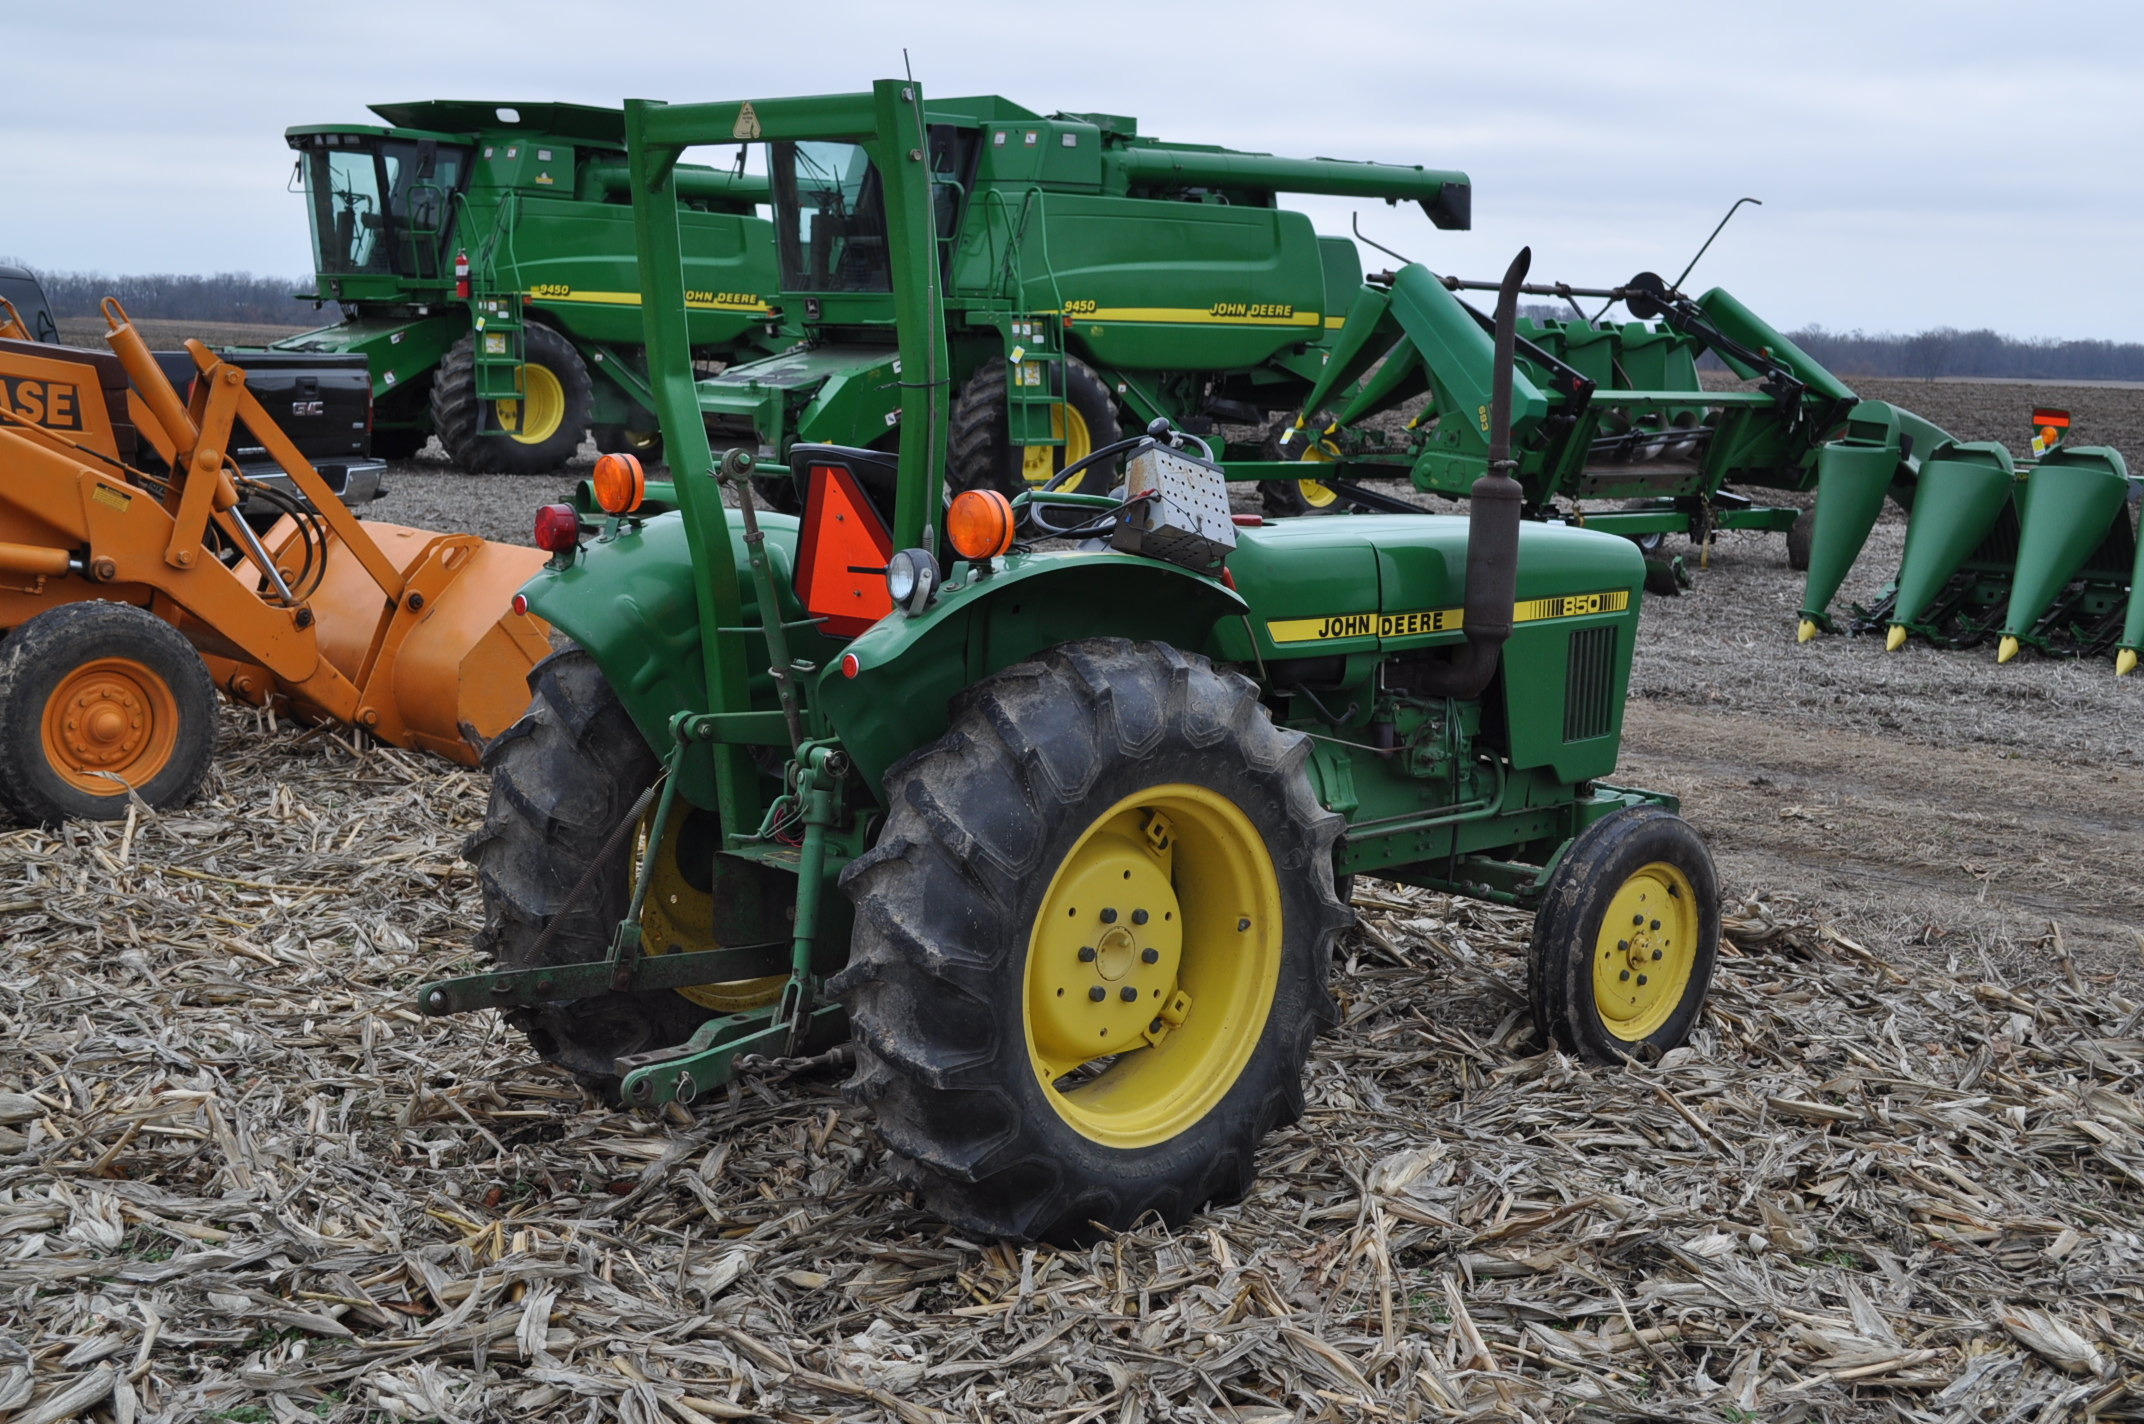 John Deere 850 utility tractor, diesel, 12.4-24 rear, 5.00-16 front, 2 hyd remotes, 3 pt, 540 pto, - Image 3 of 13